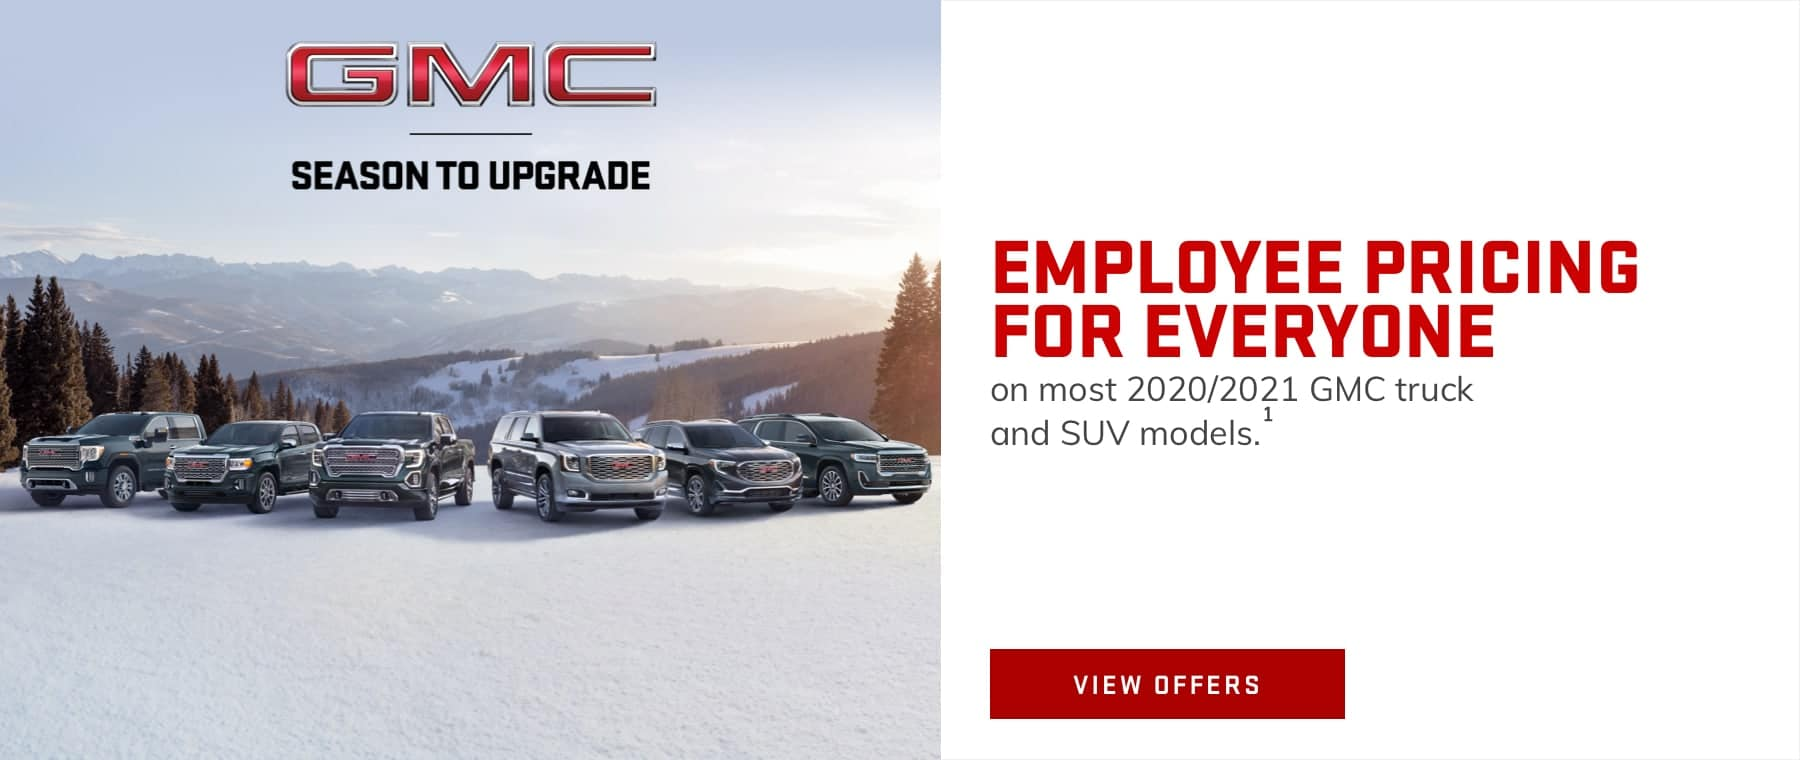 EMPLOYEE PRICING FOR EVERYONE on most 2020/2021 GMC truck and SUV models.